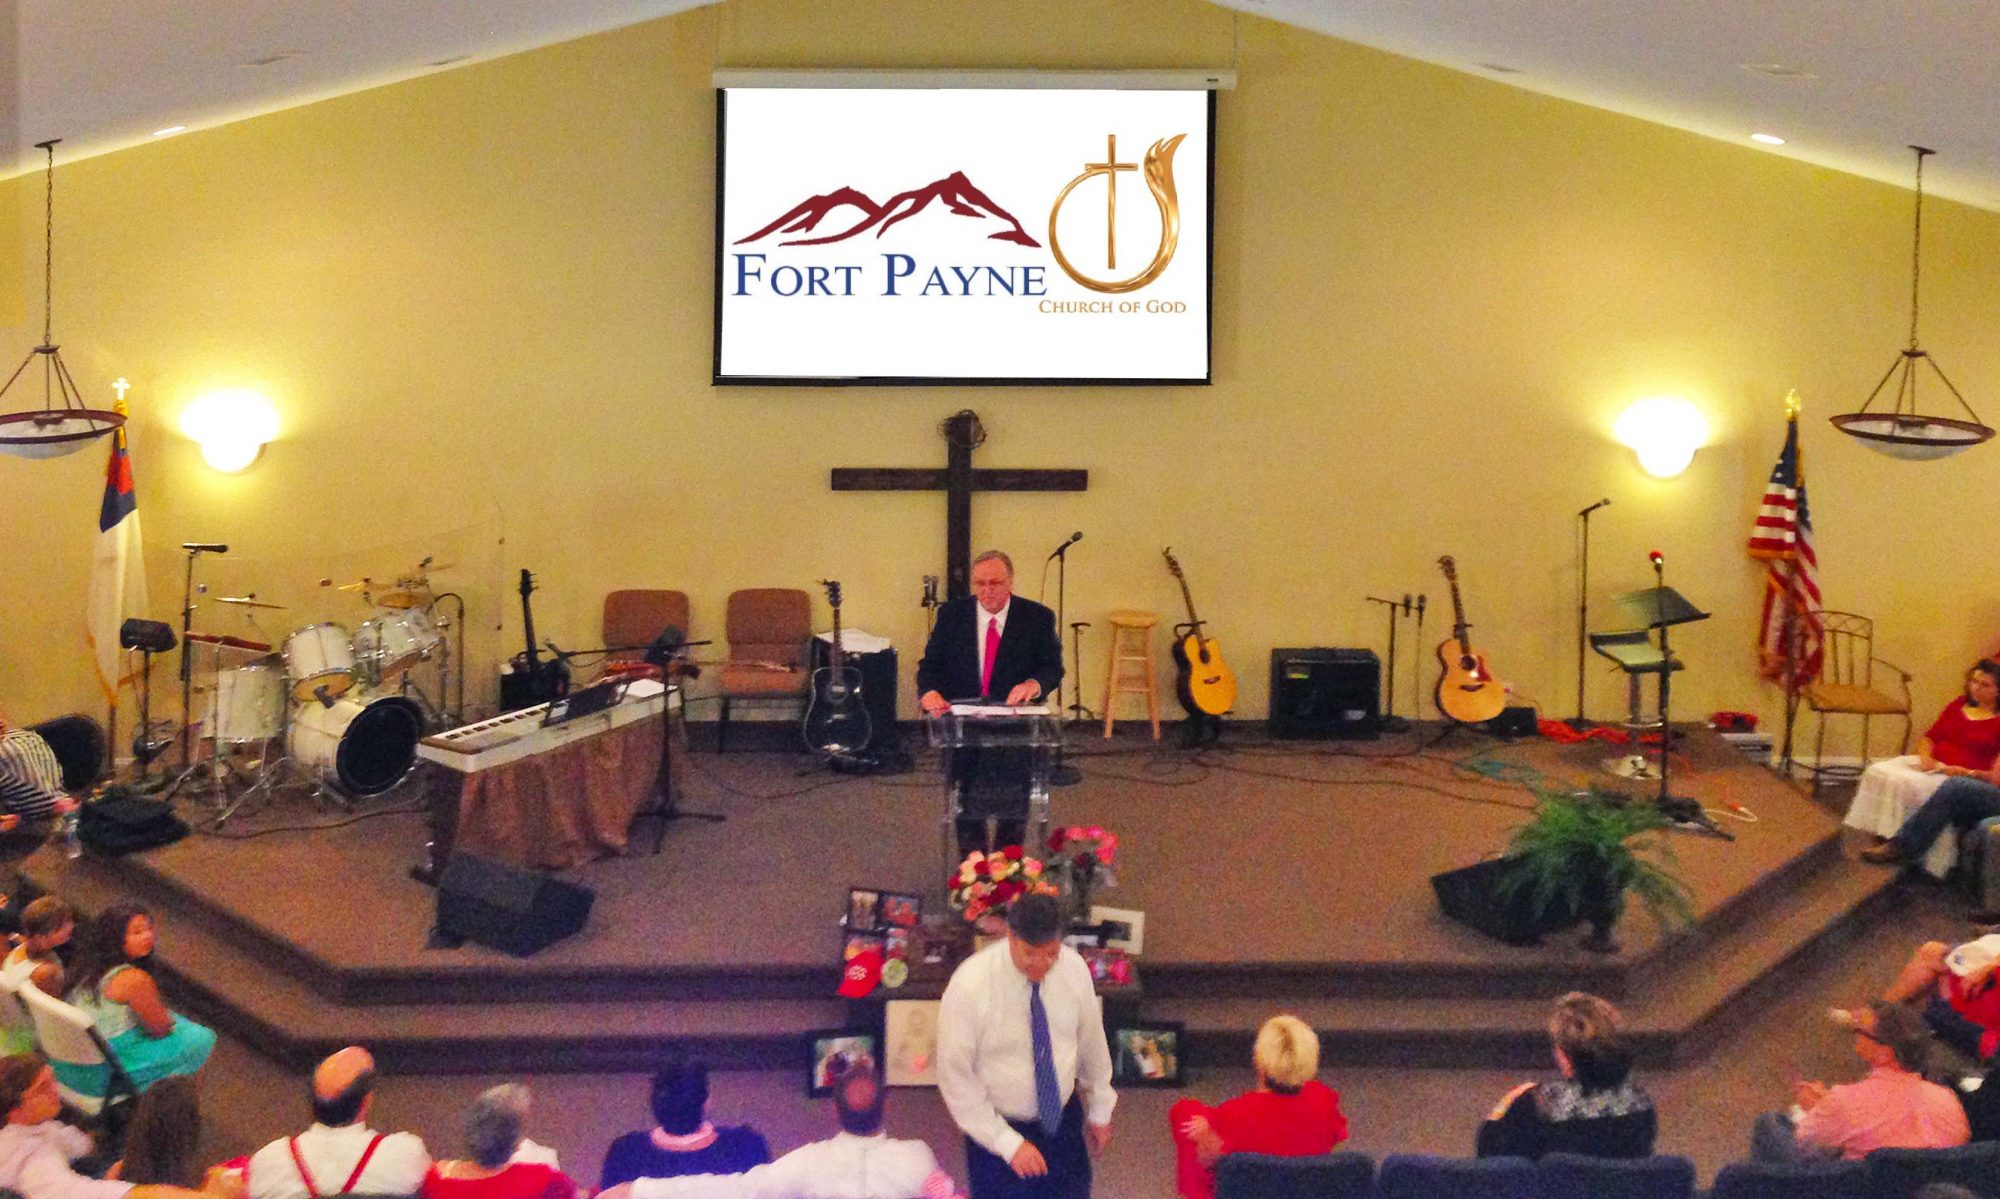 Fort Payne Church of God